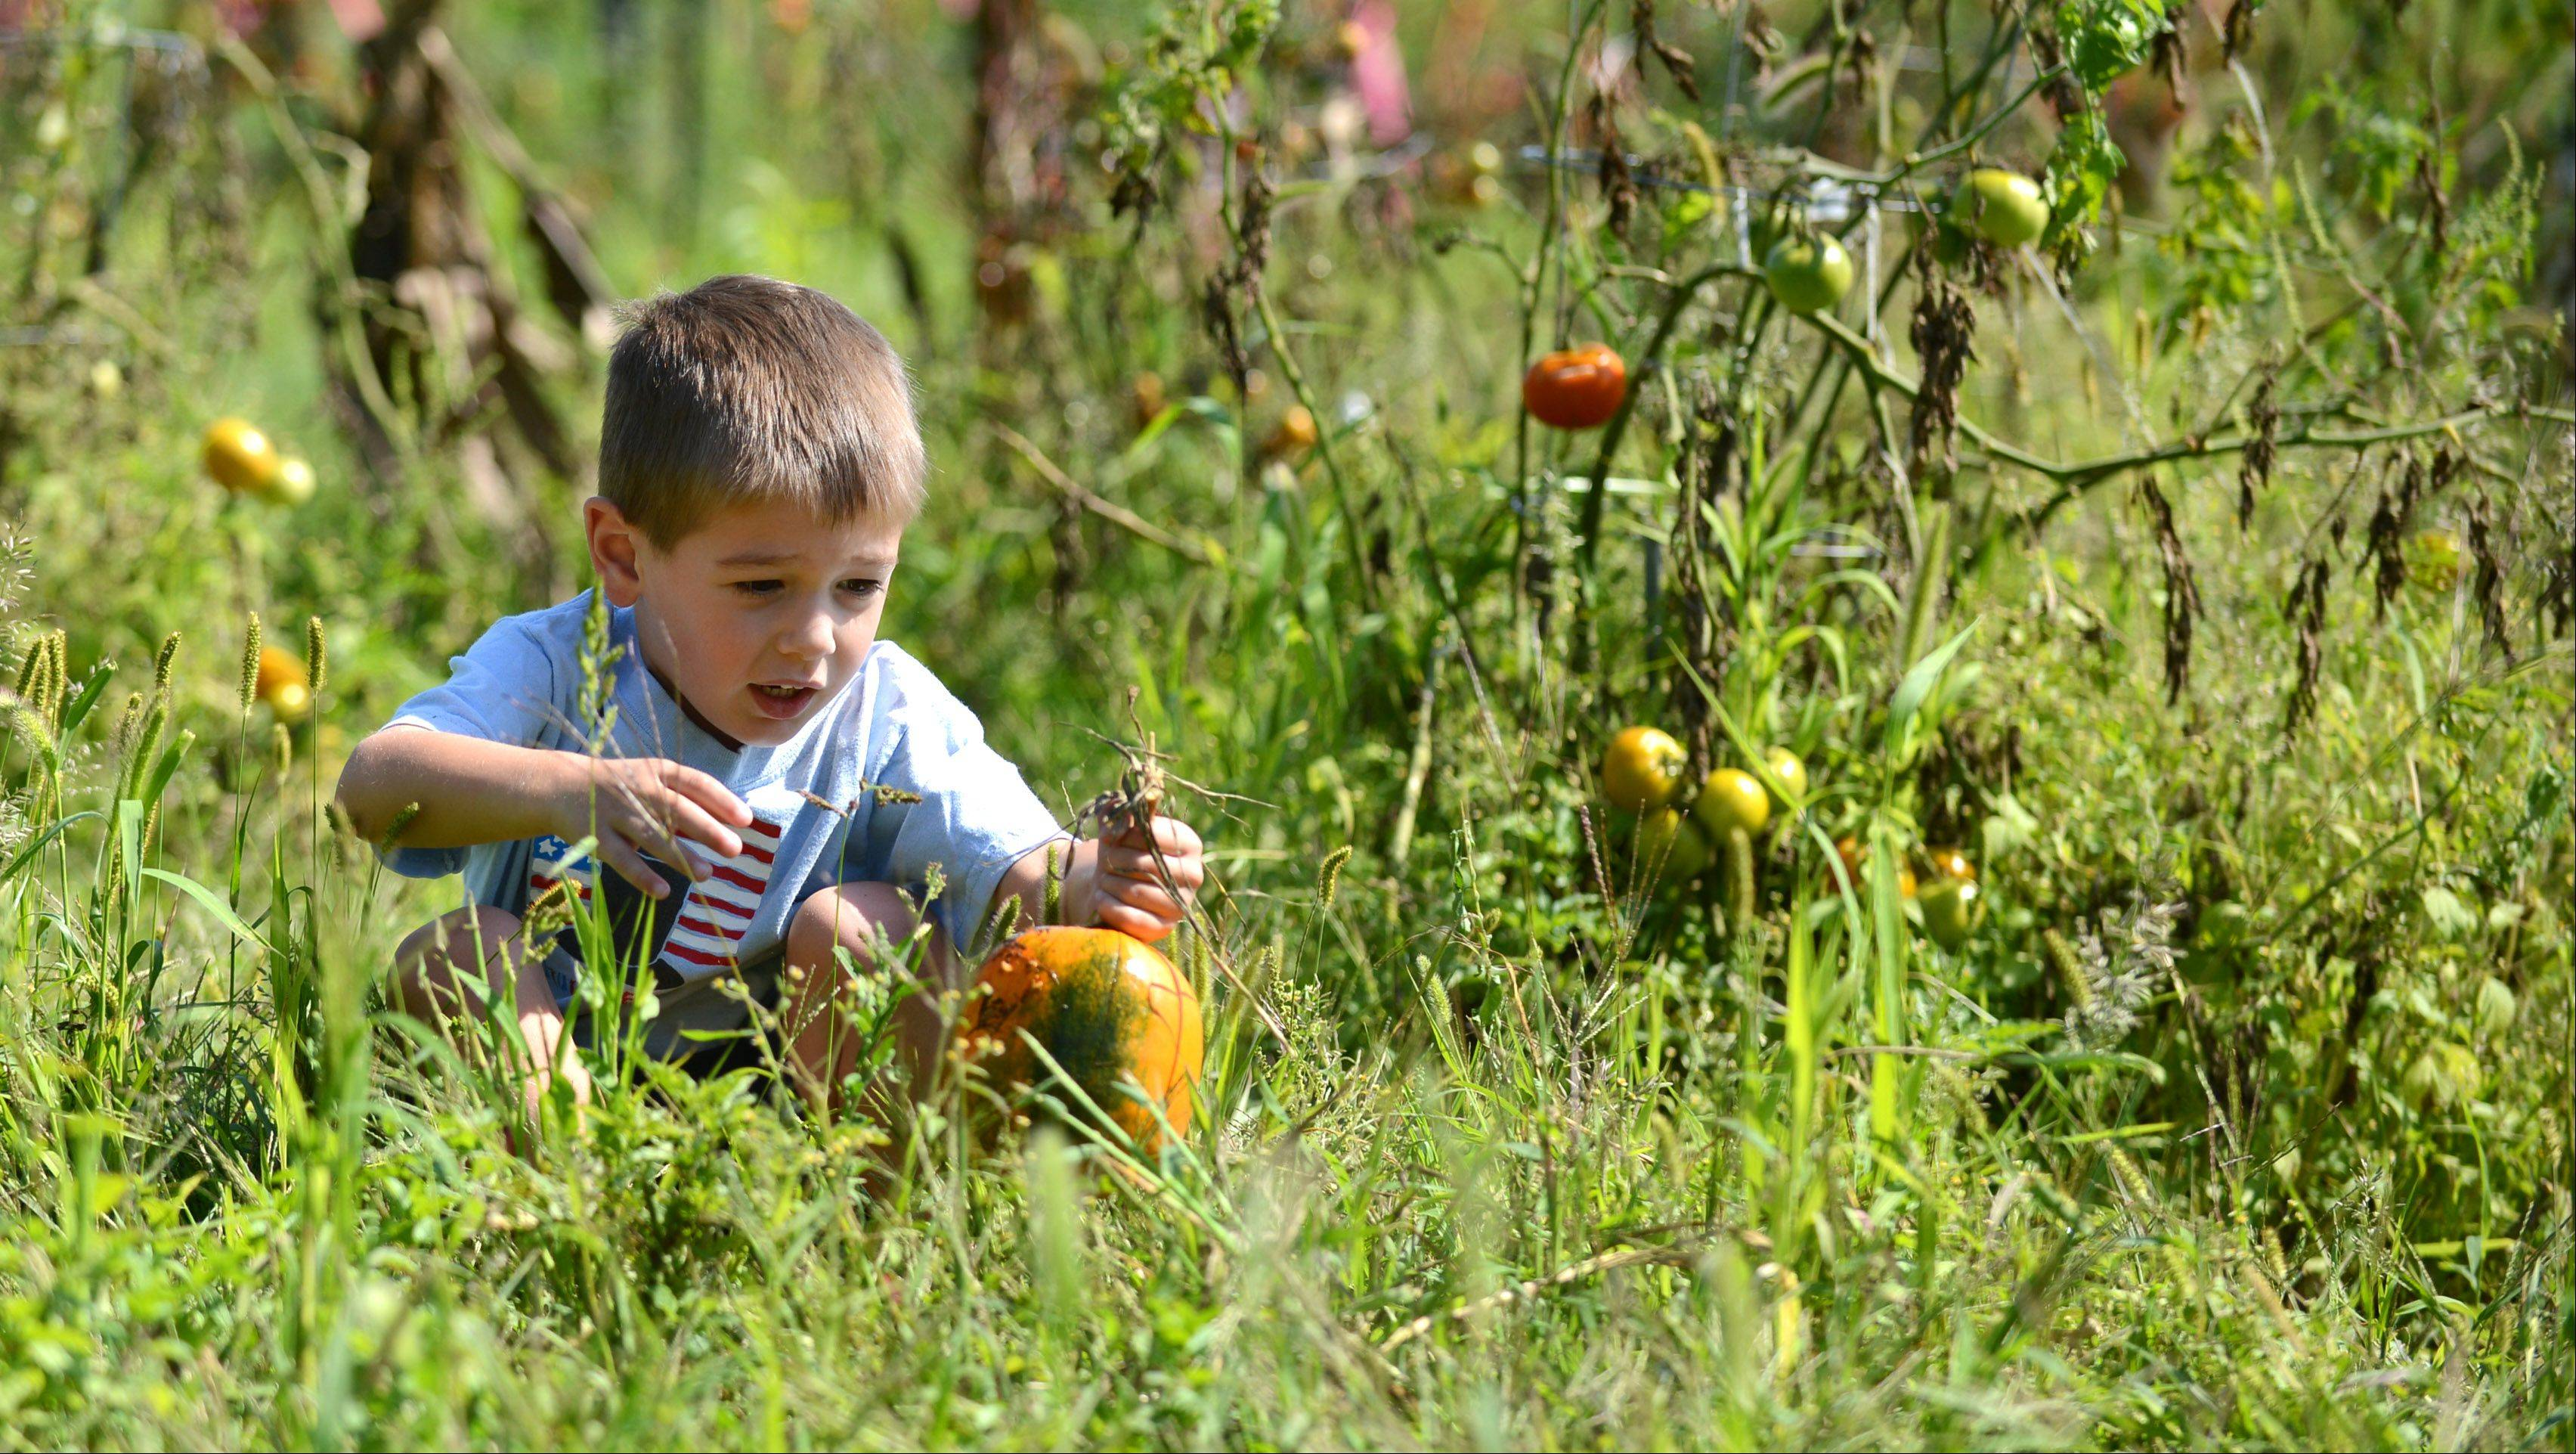 Jack Laraia, 4, of St. Charles picks a pumpkin while tending to his plot with his mom Lori at the community gardens at James O. Breen Community Park in St. Charles Wednesday. This is their second year with a plot where they grow tomatoes, zucchini, beans and peppers in addition to pumpkins.